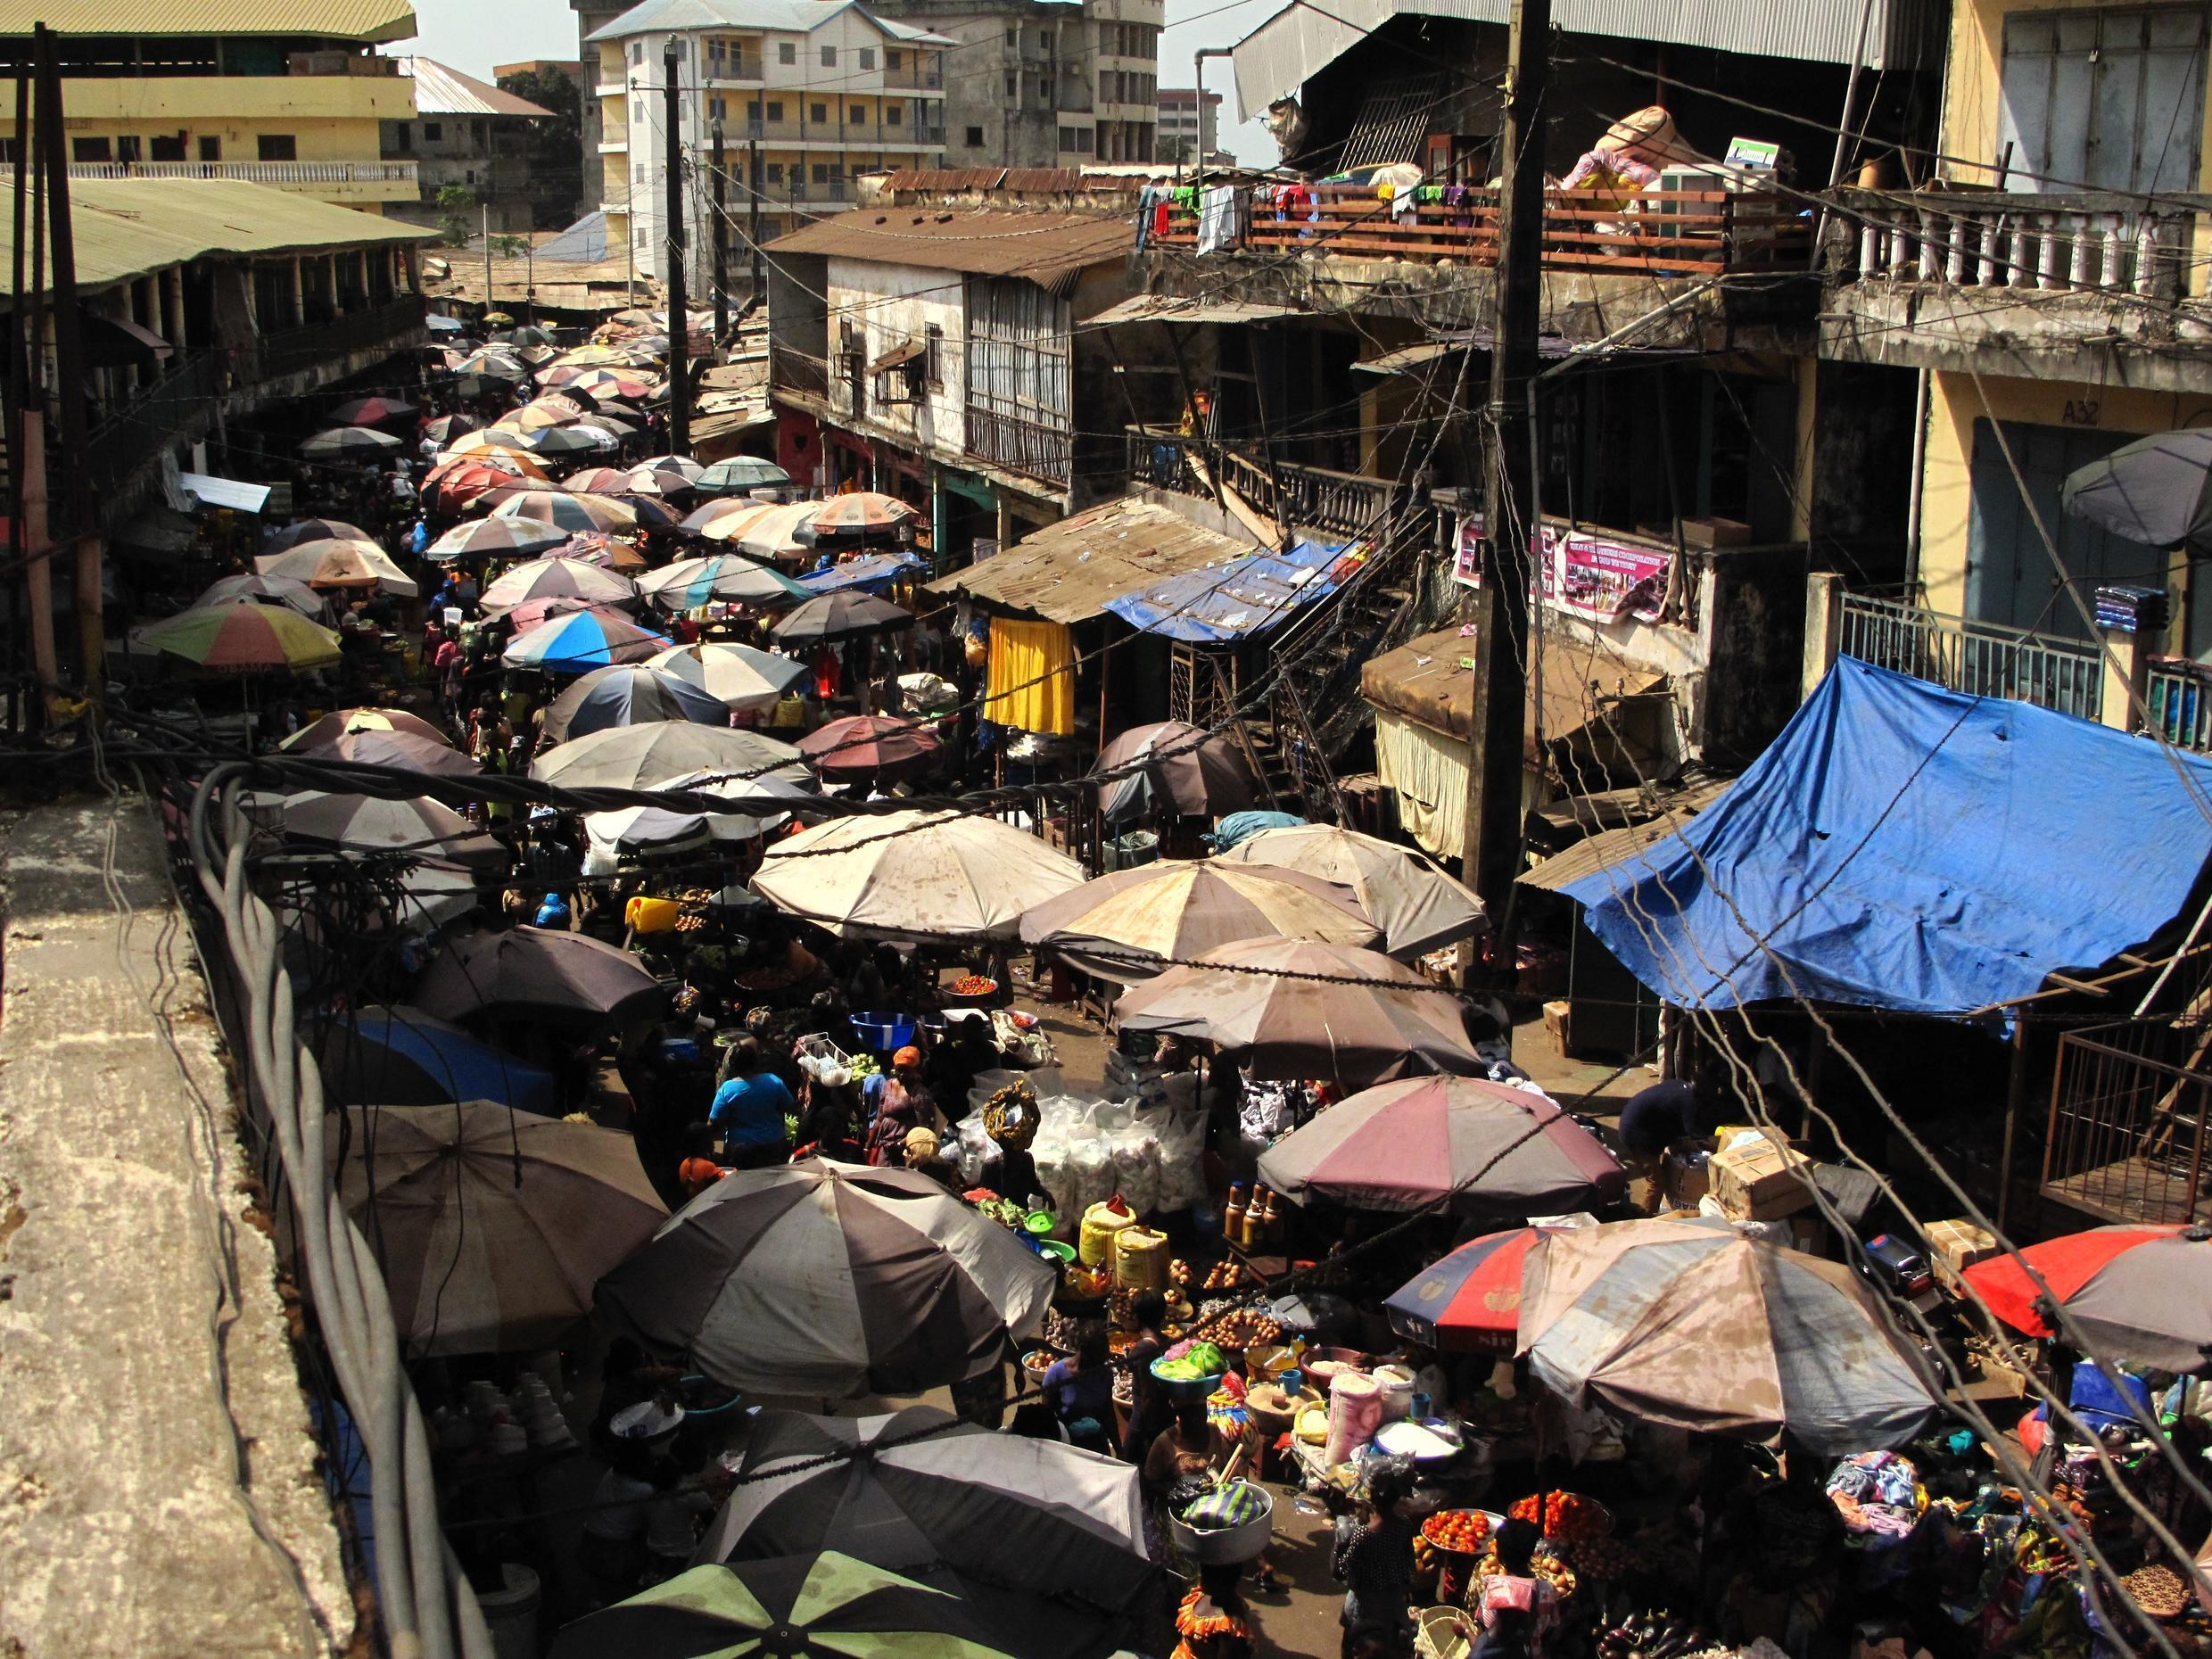 View of a market in the streets of Conakry